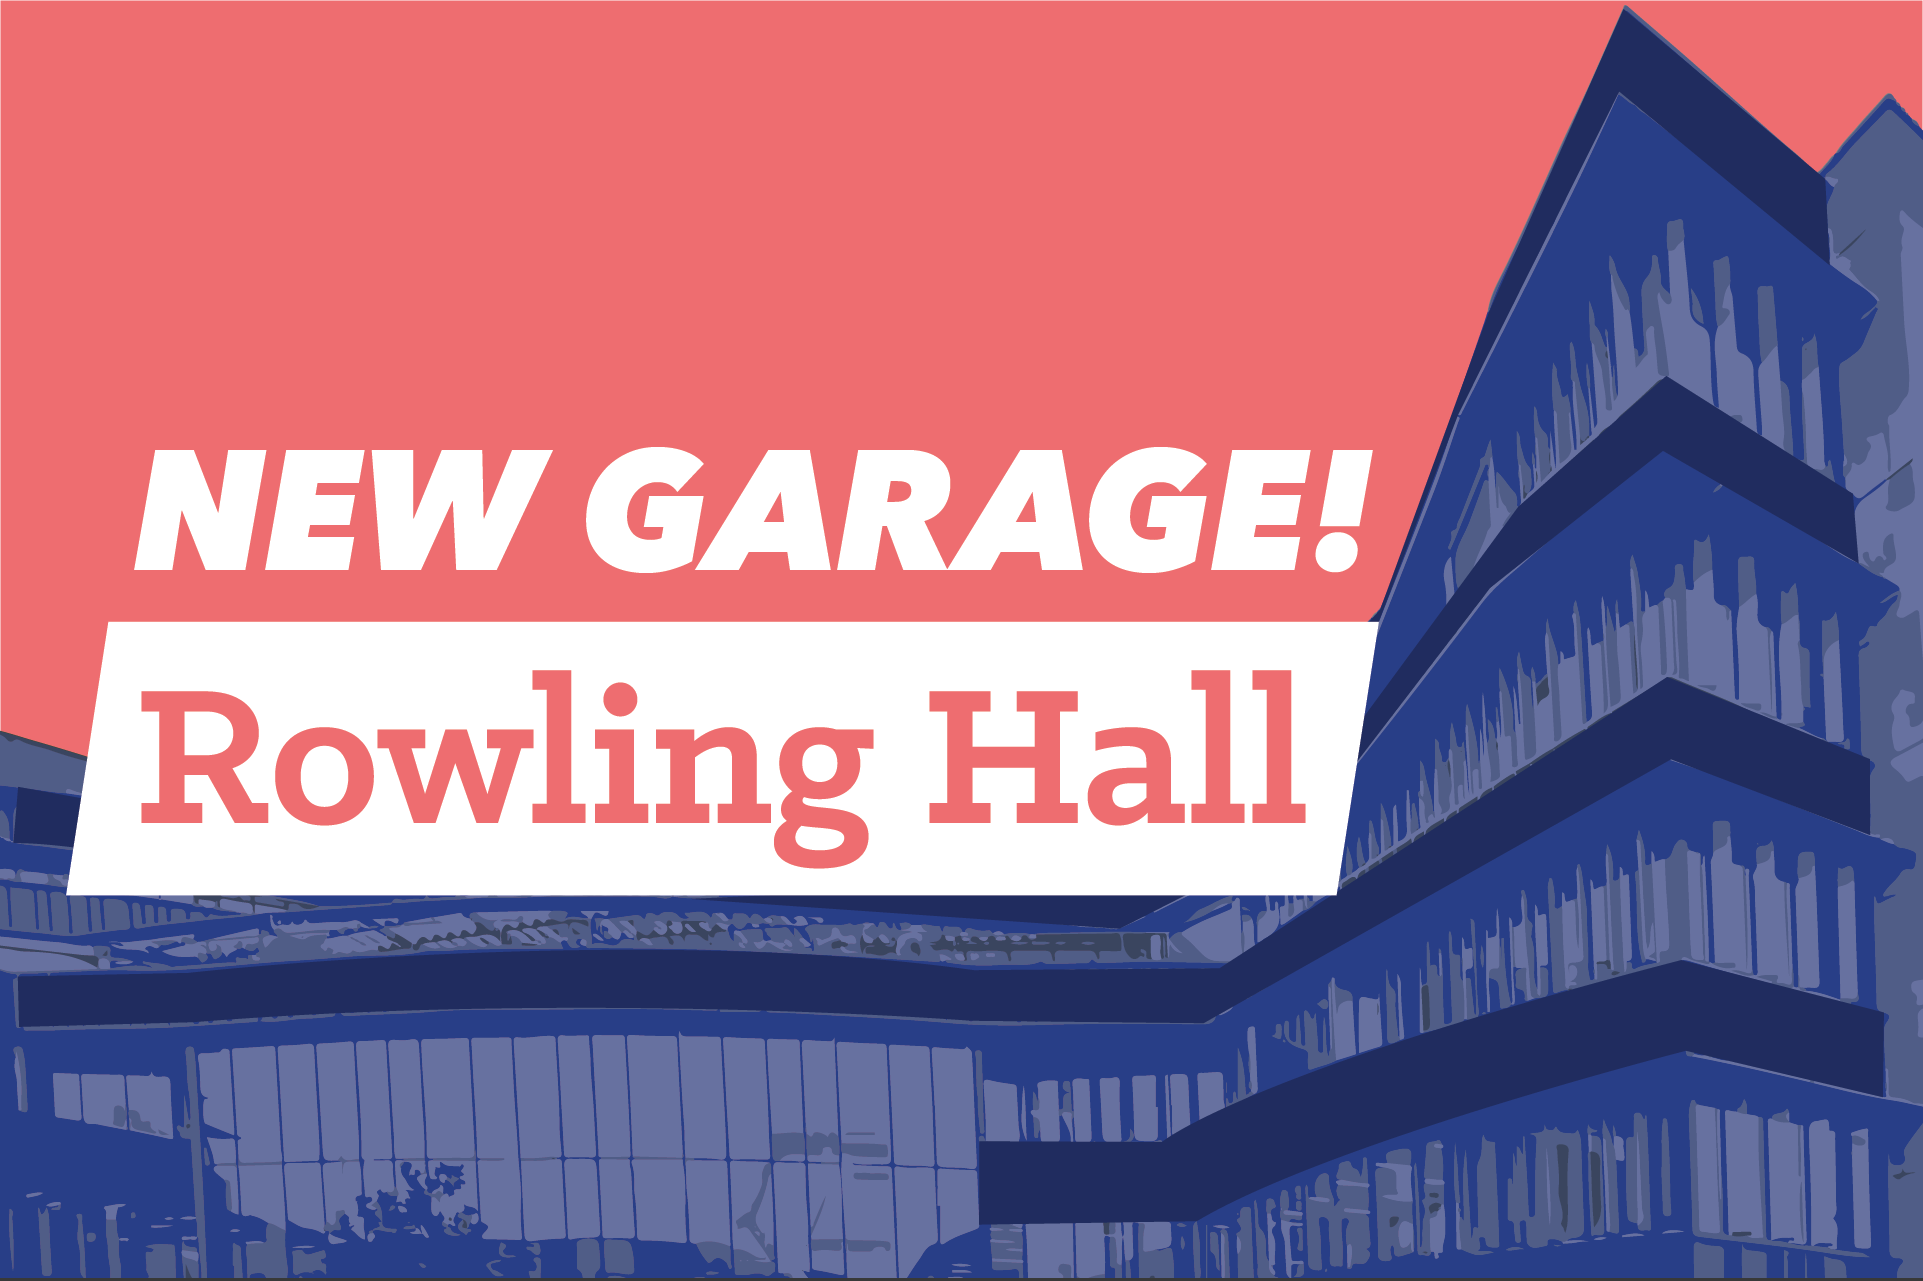 New garage! Rowling hall